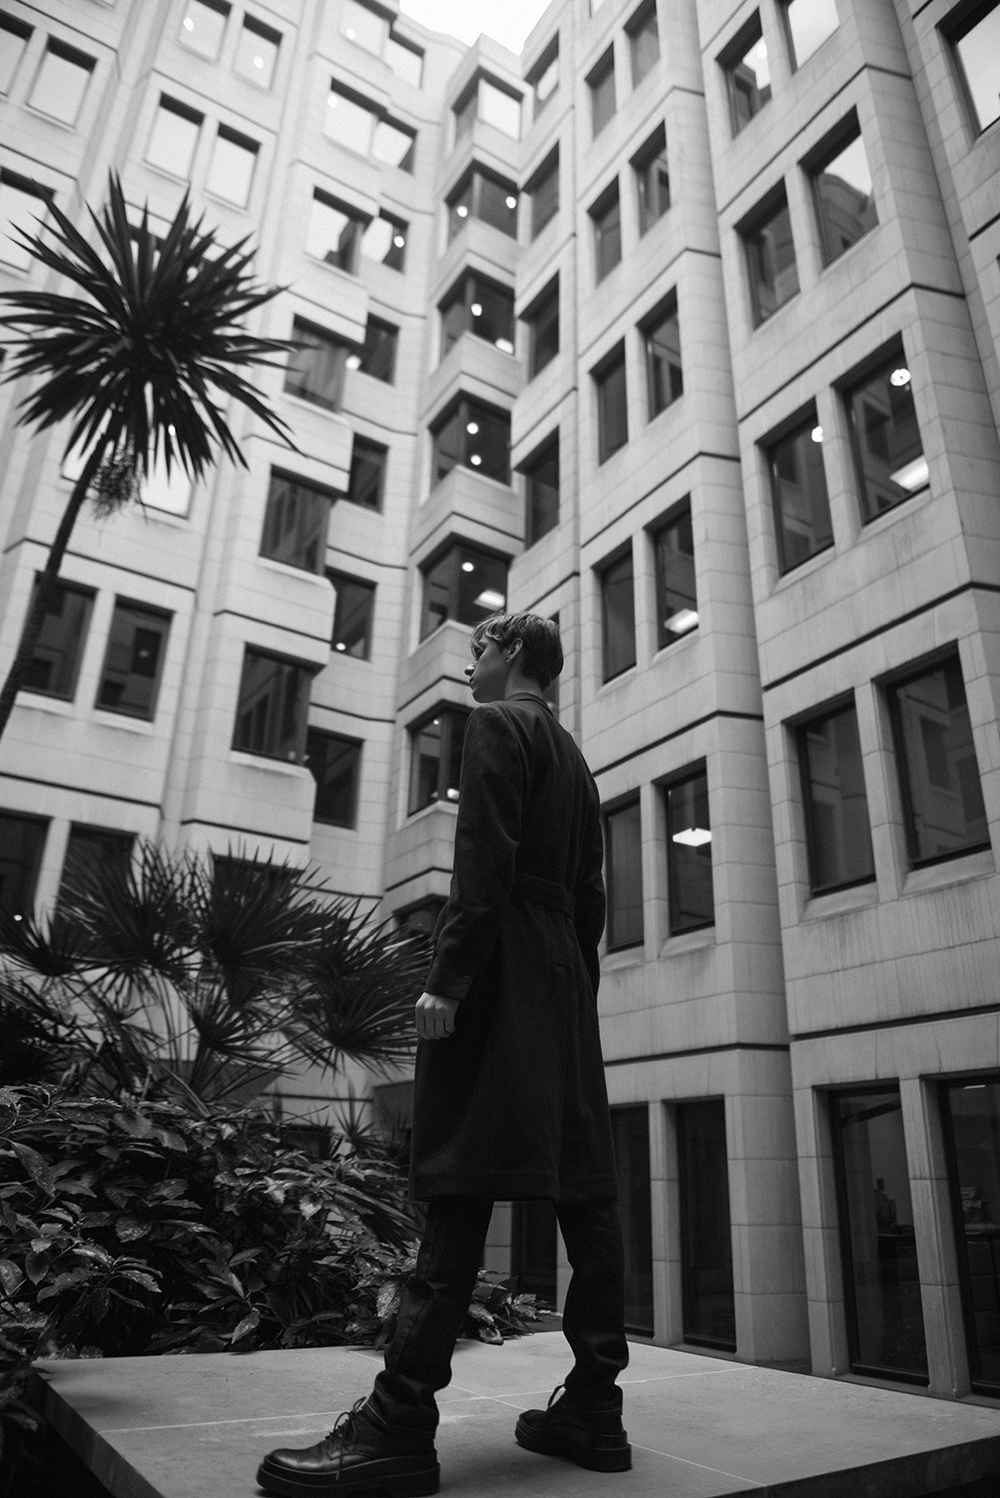 MikkoPuttonen_for_MatchesFashion_Matchesman_StellaMcCartney_menswear_collection_ss17_oufit_architecture_photography_London_PawelAdam10_bw_web